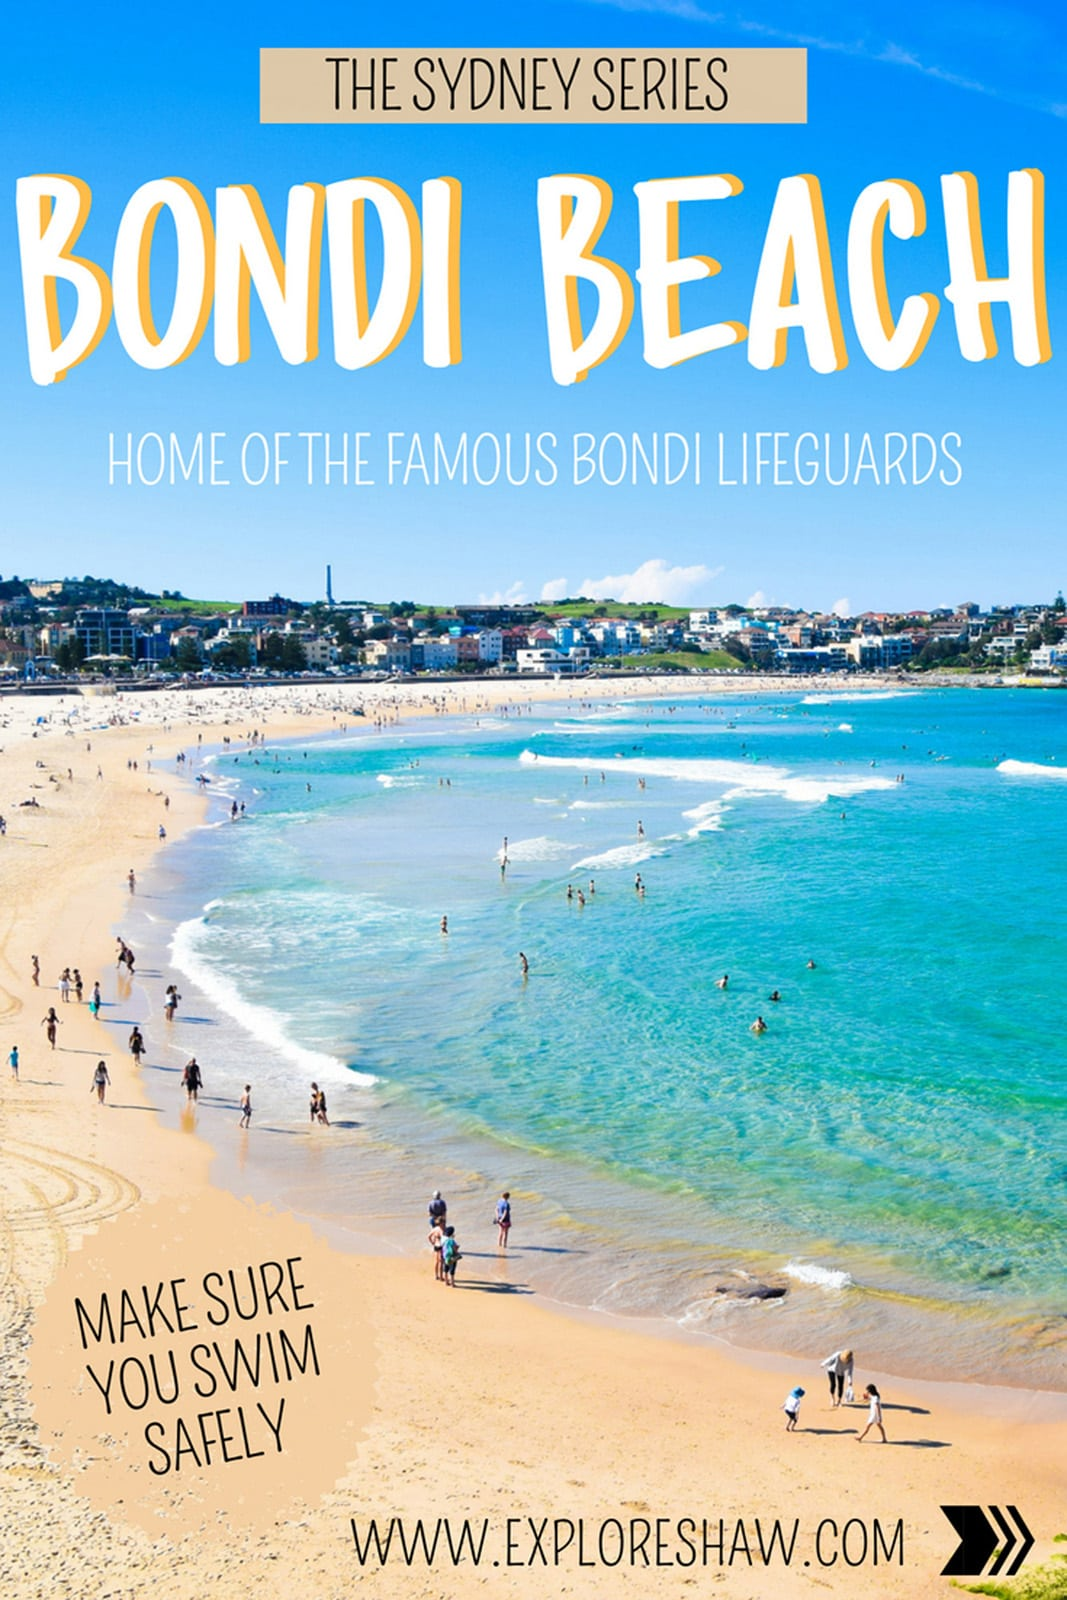 It's always summer at Australia's most famous beach - Bondi Beach in Sydney. The home to the famous lifeguards in blue and the hit reality show Bondi Rescue, you can't visit Sydney without a trip to Bondi Beach. #Australia #NewSouthWales #Sydney #BondiBeach